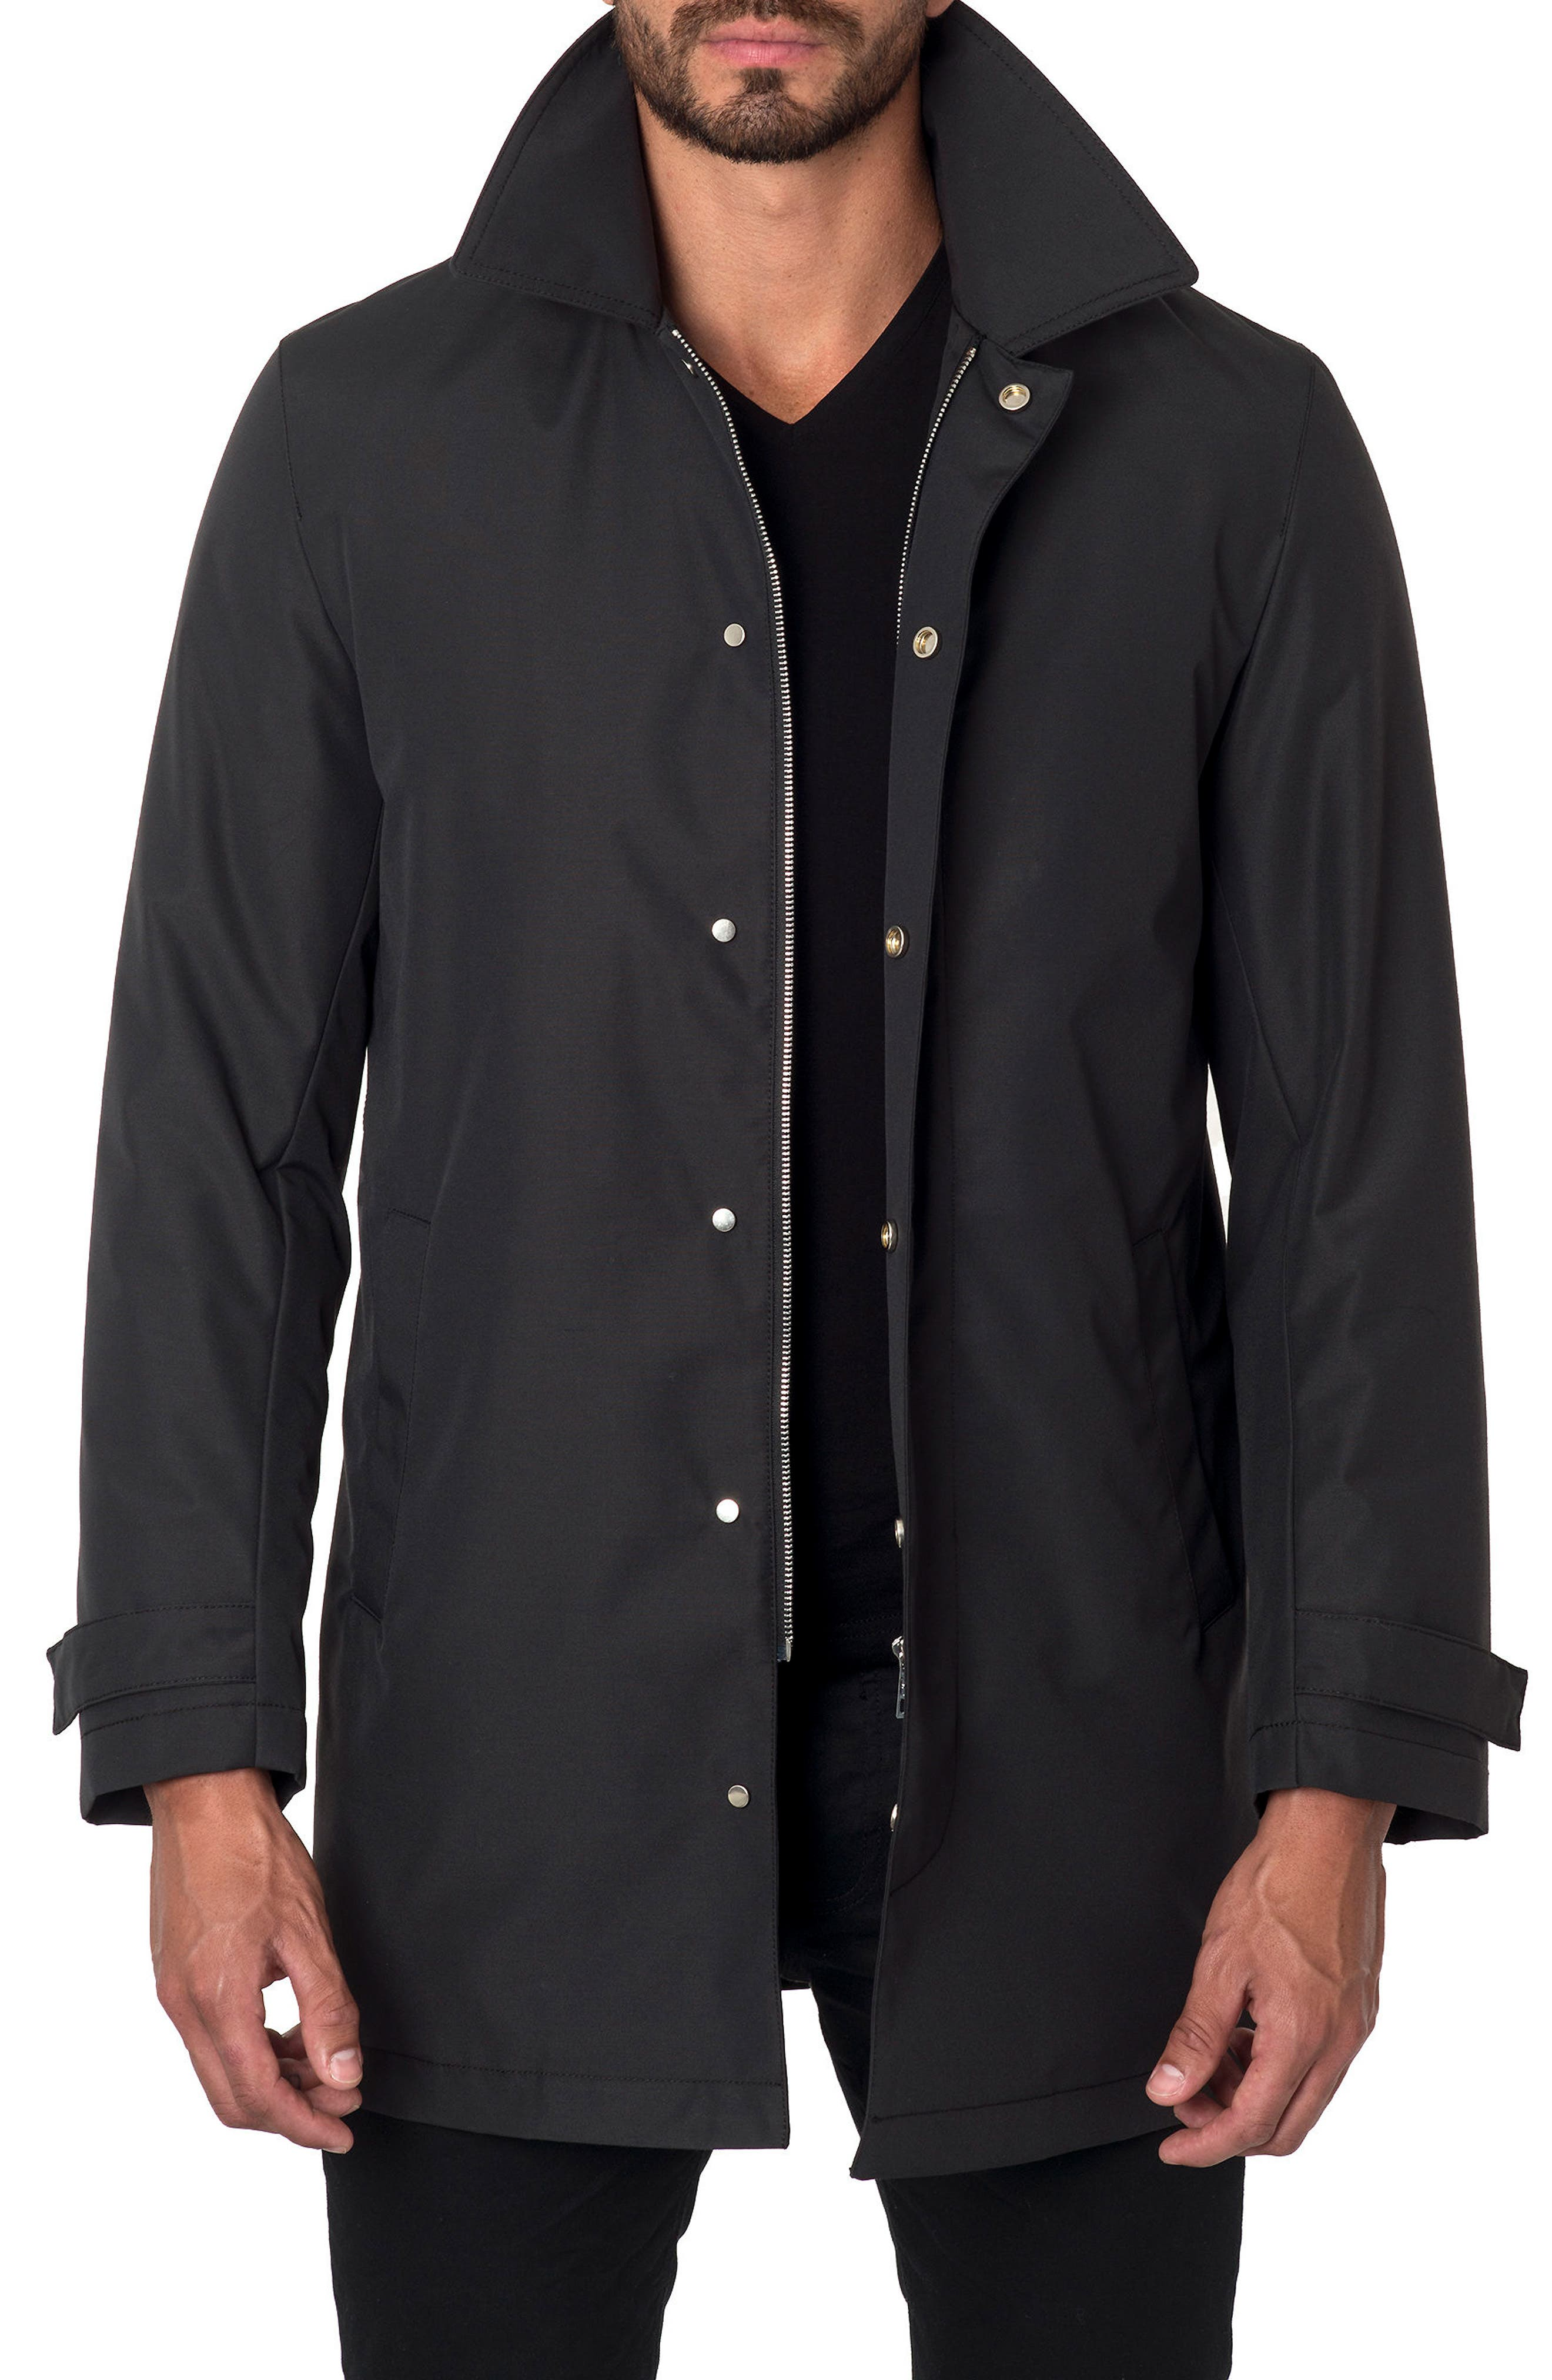 Water Repellent Jacket,                             Main thumbnail 1, color,                             001